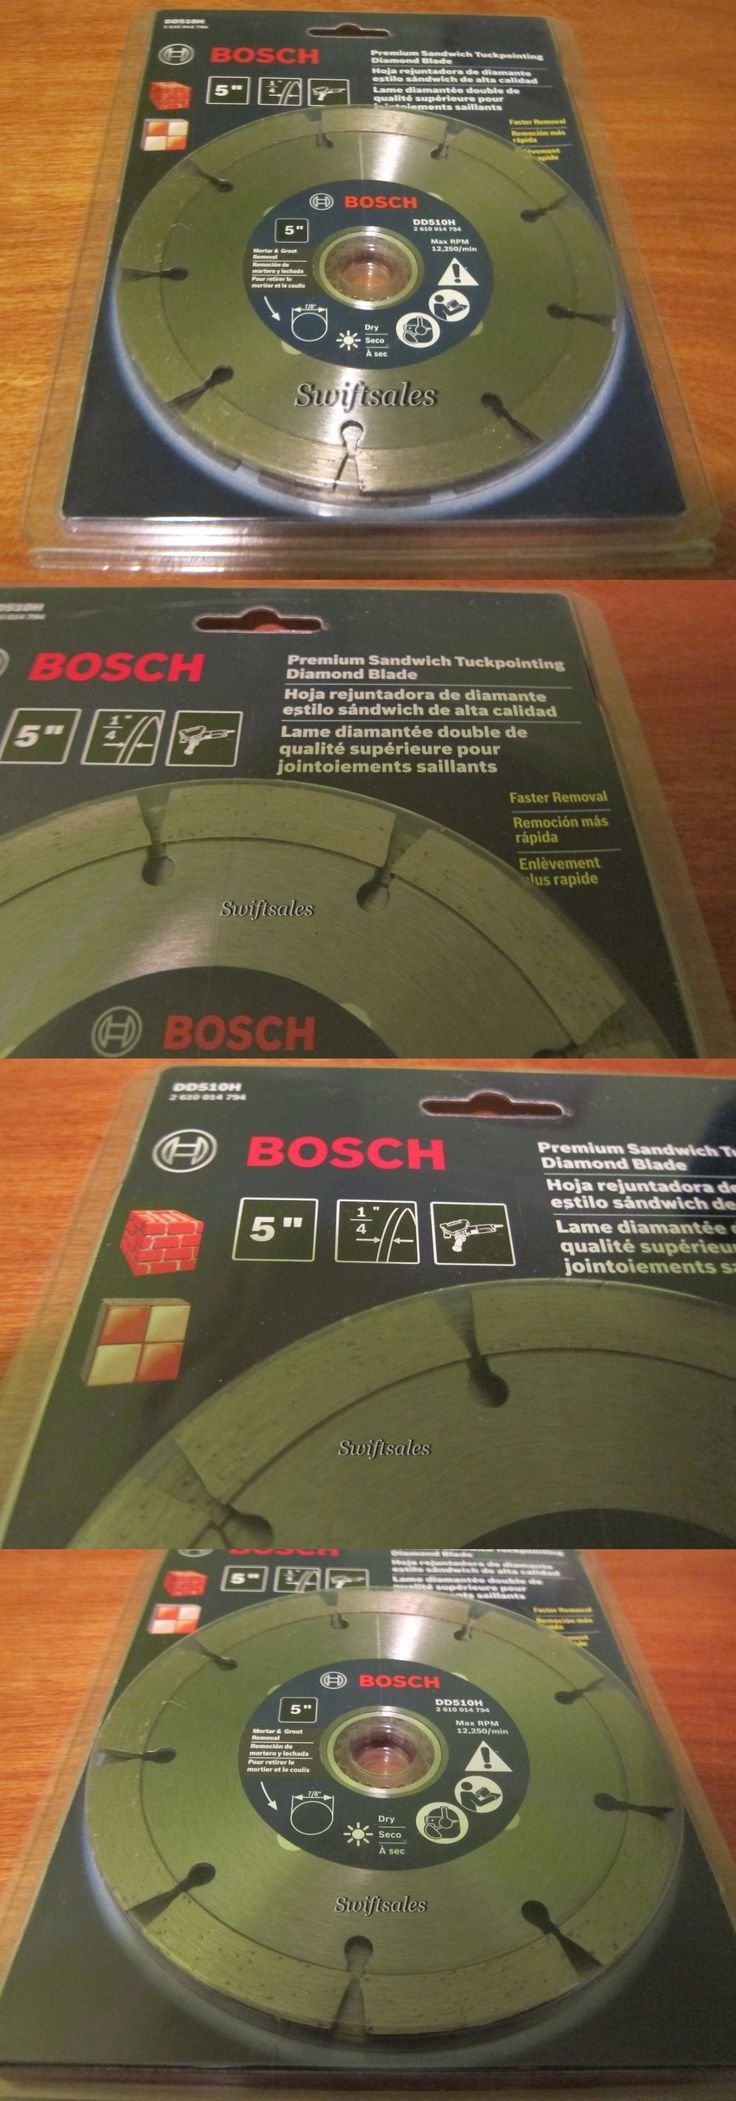 Grinding Wheels and Accessories 79703: Bosch Dd510h 5 Premium Sandwich Tuckpointing Diamond Grinder Blade - New Sealed -> BUY IT NOW ONLY: $37.99 on eBay!